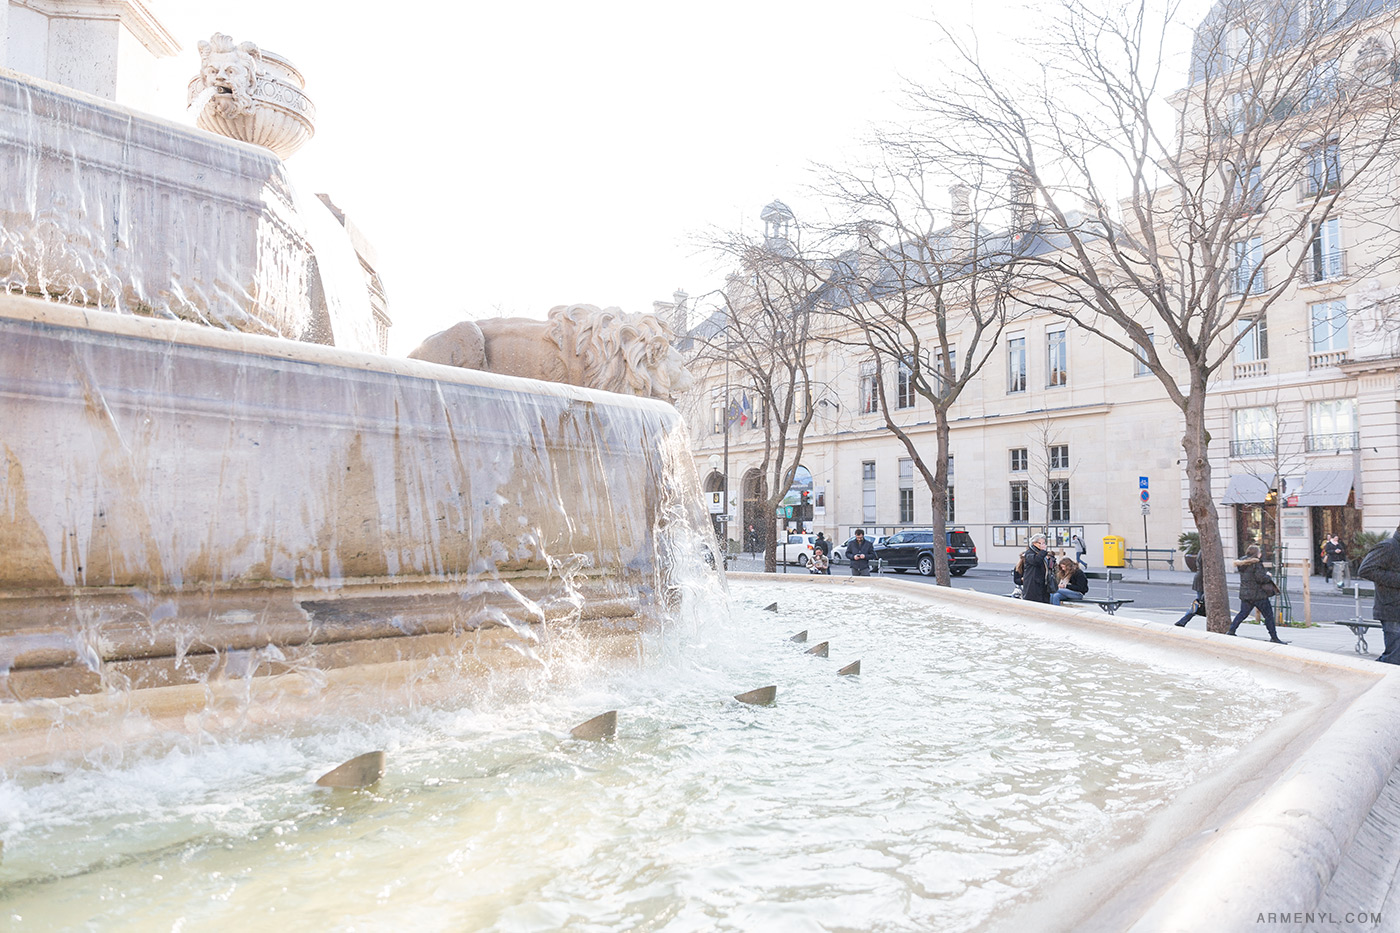 3-Sunny-day-in-Paris-France-photographed-by-Armenyl.com